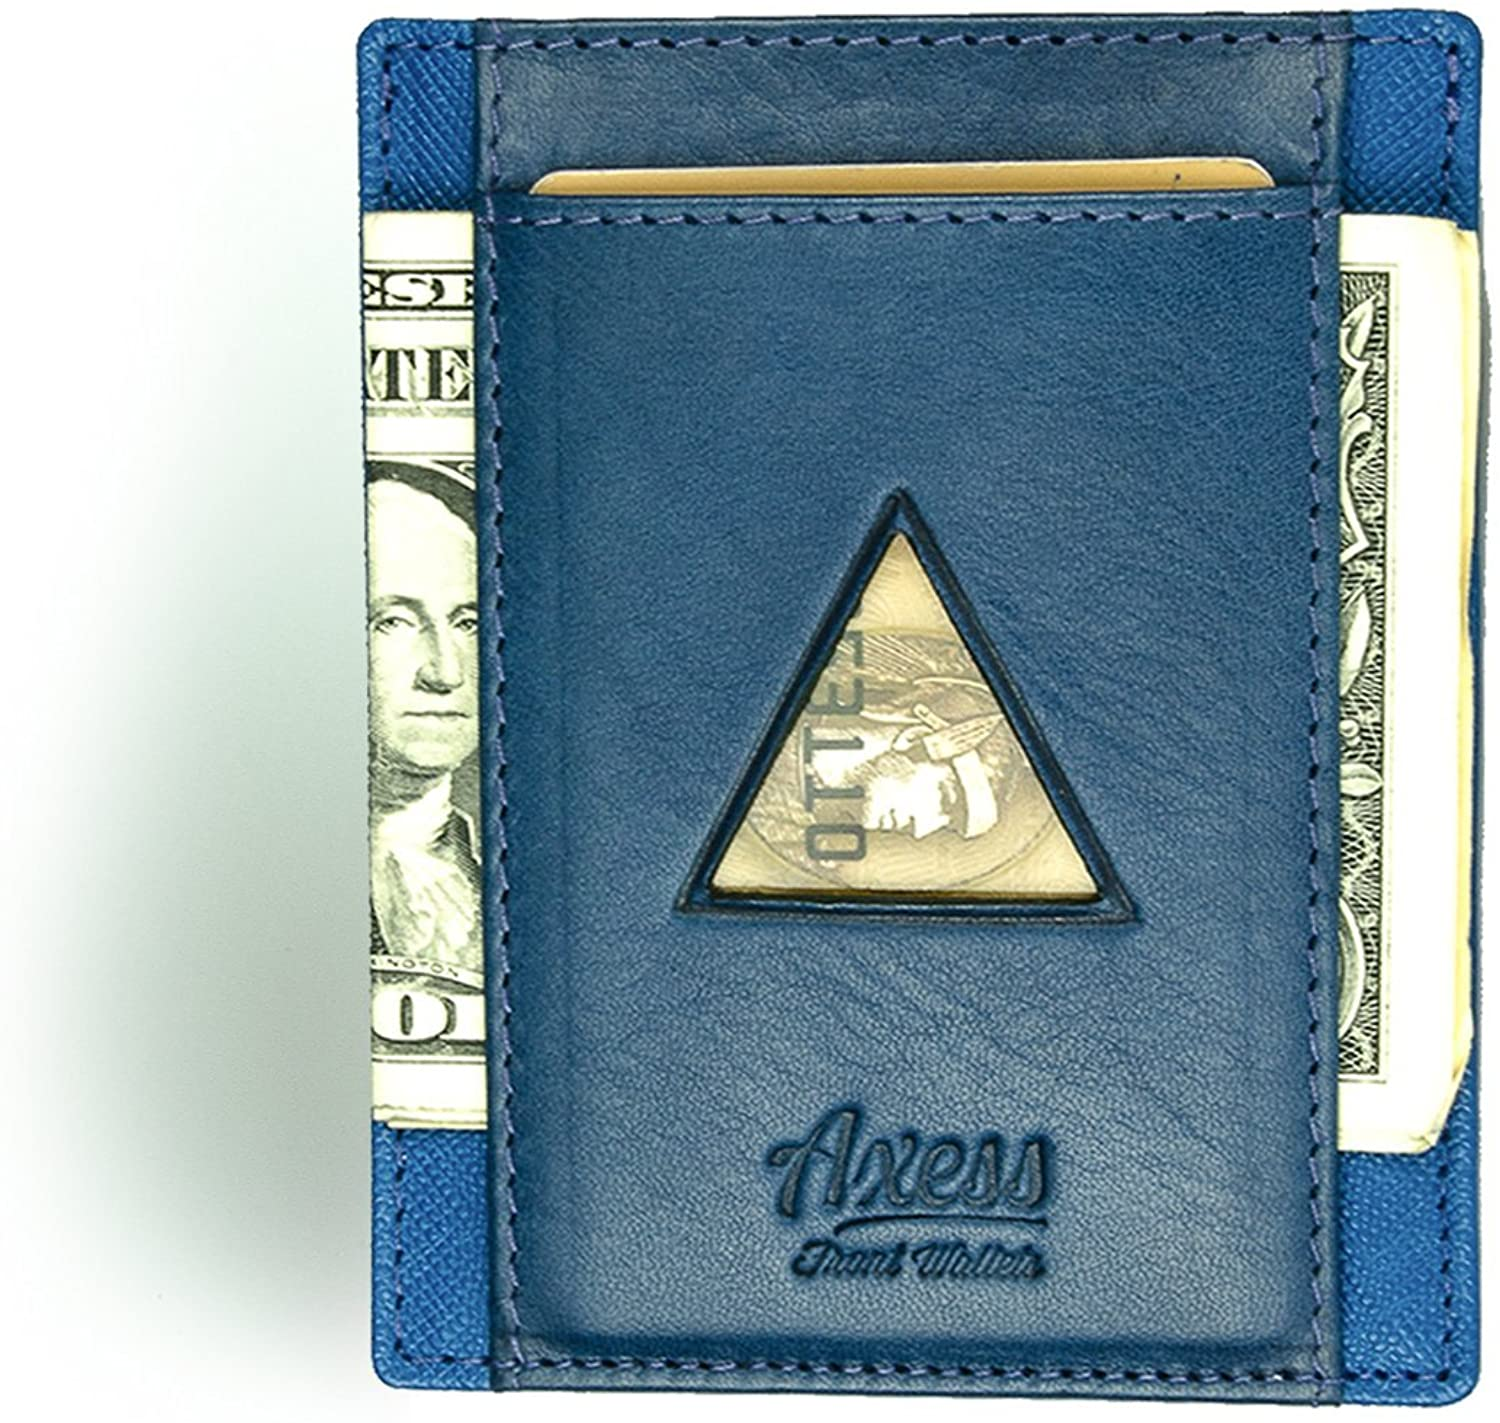 Tuscany Leather & Saffiano leather RFID-blocking Front Pocket Strap Wallet